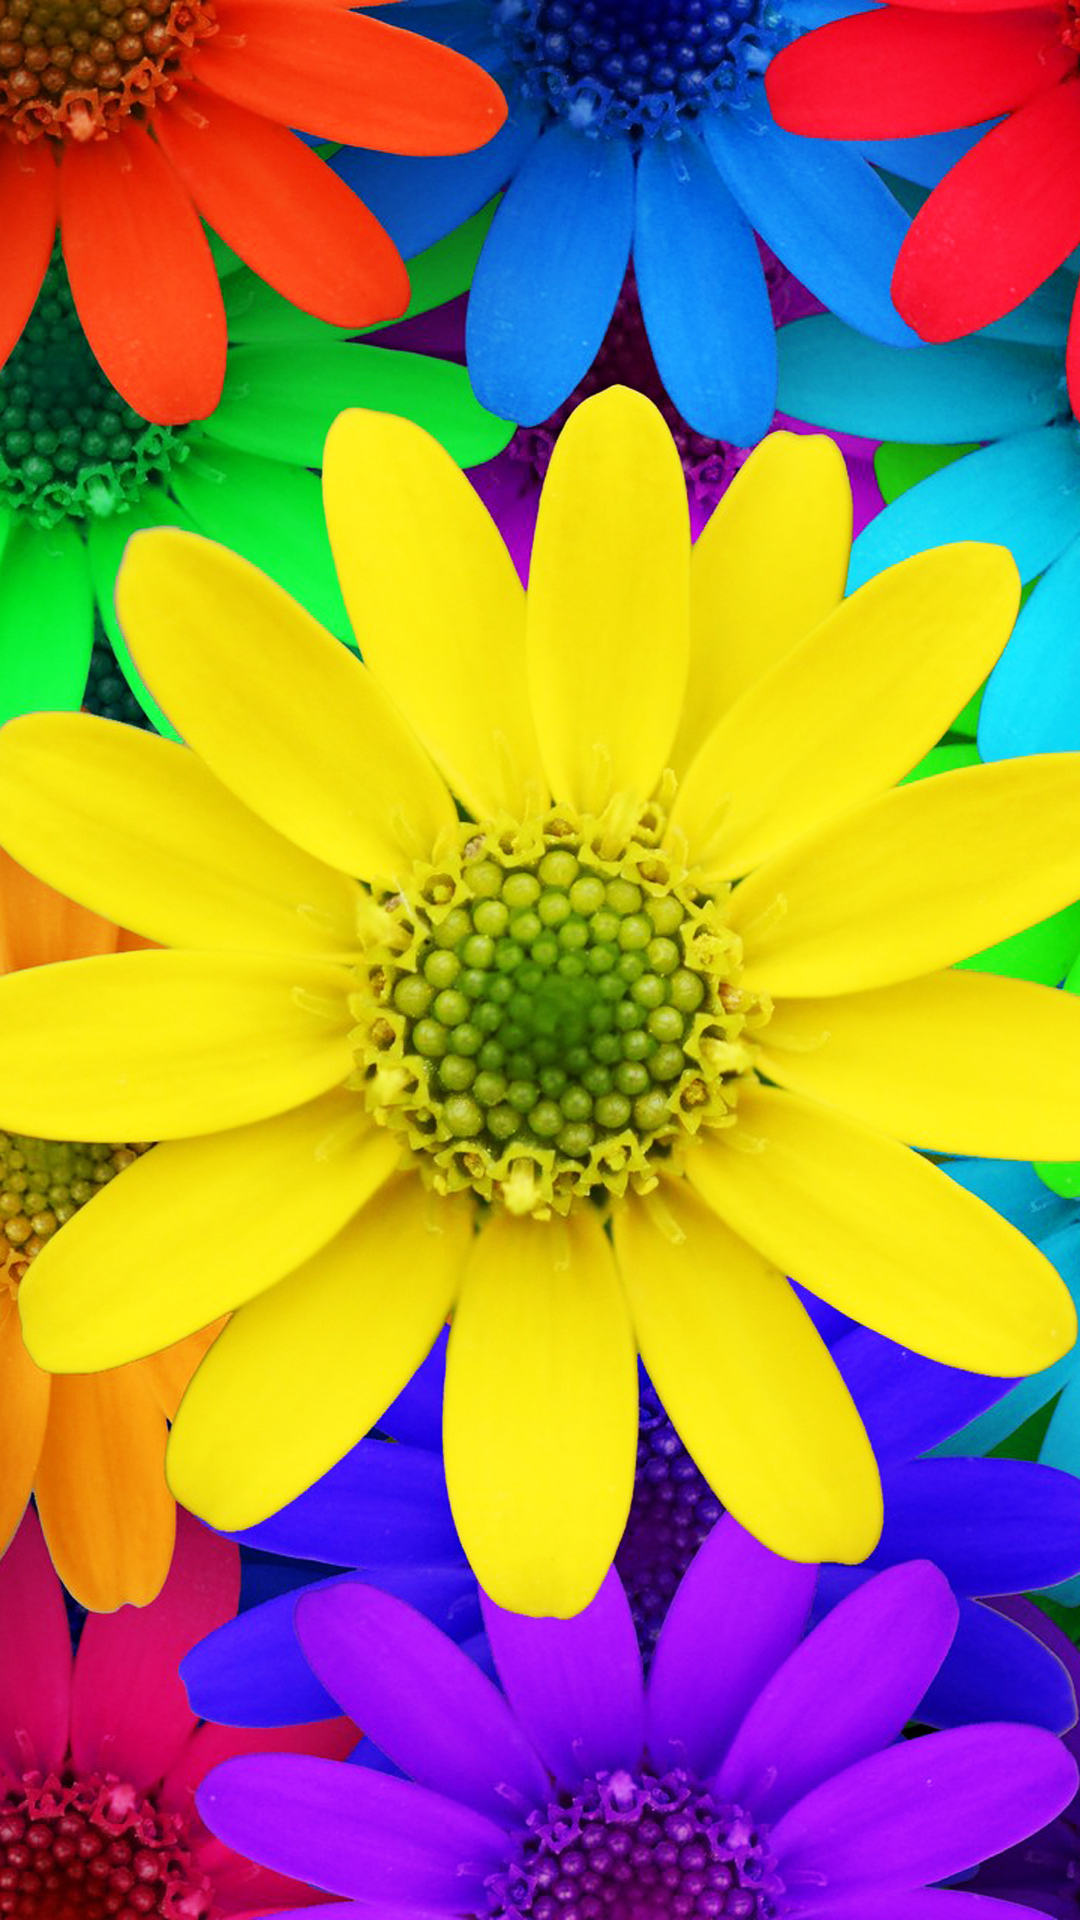 colorful-daisy-flowers-spring-red-yellow-blue-purple-image-1080%C3%971920-wallpaper-wp3803914